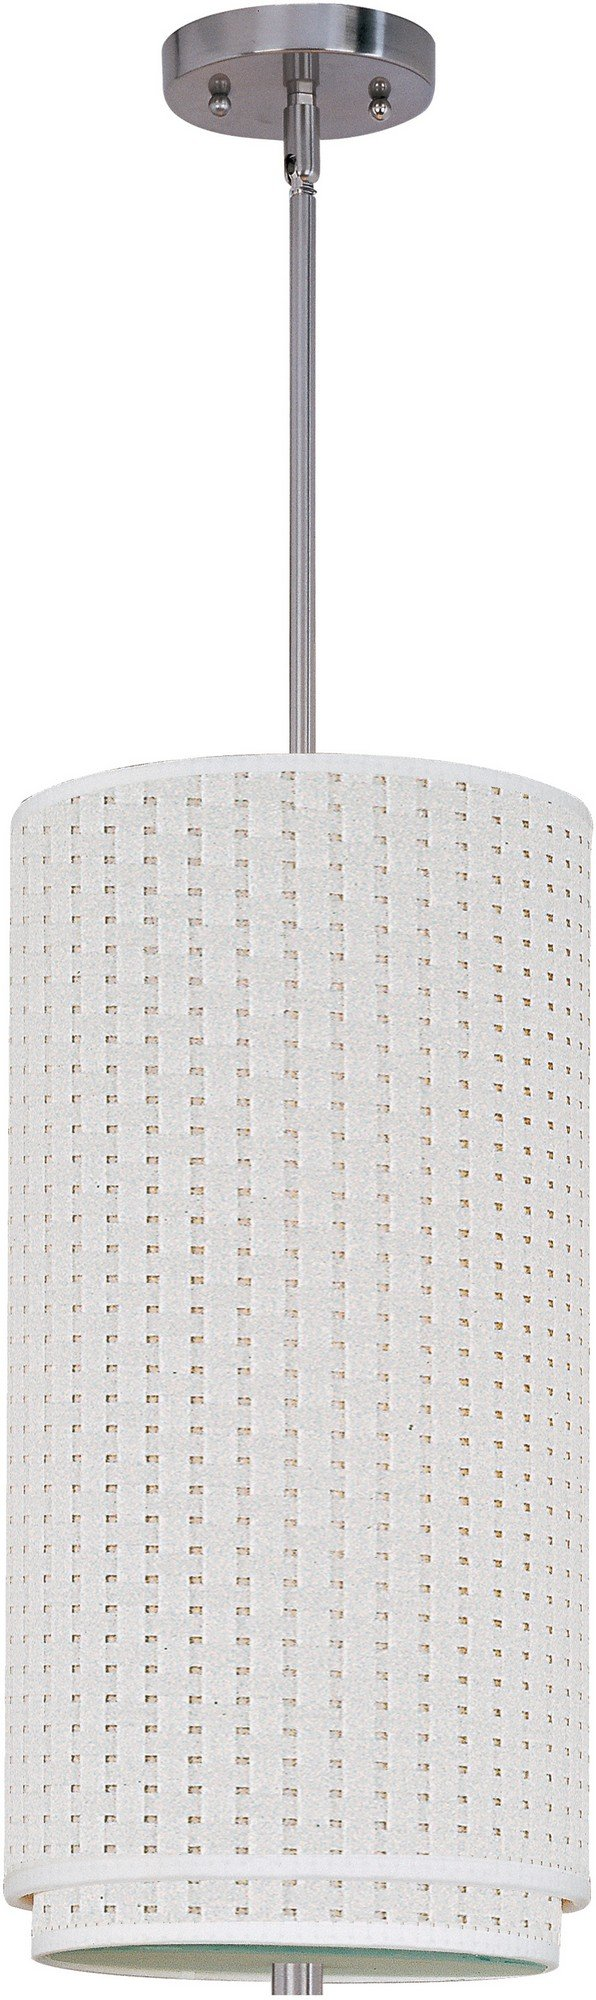 ET2 E95144-100SN Elements 1-Light Pendant with Stem Mini Pendant, Satin Nickel Finish, Glass, GU24 Fluorescent Bulb, 20W Max., Dry Safety Rated, Standard Dimmable, Vinyl Shade Material, 2300 Rated Lumens